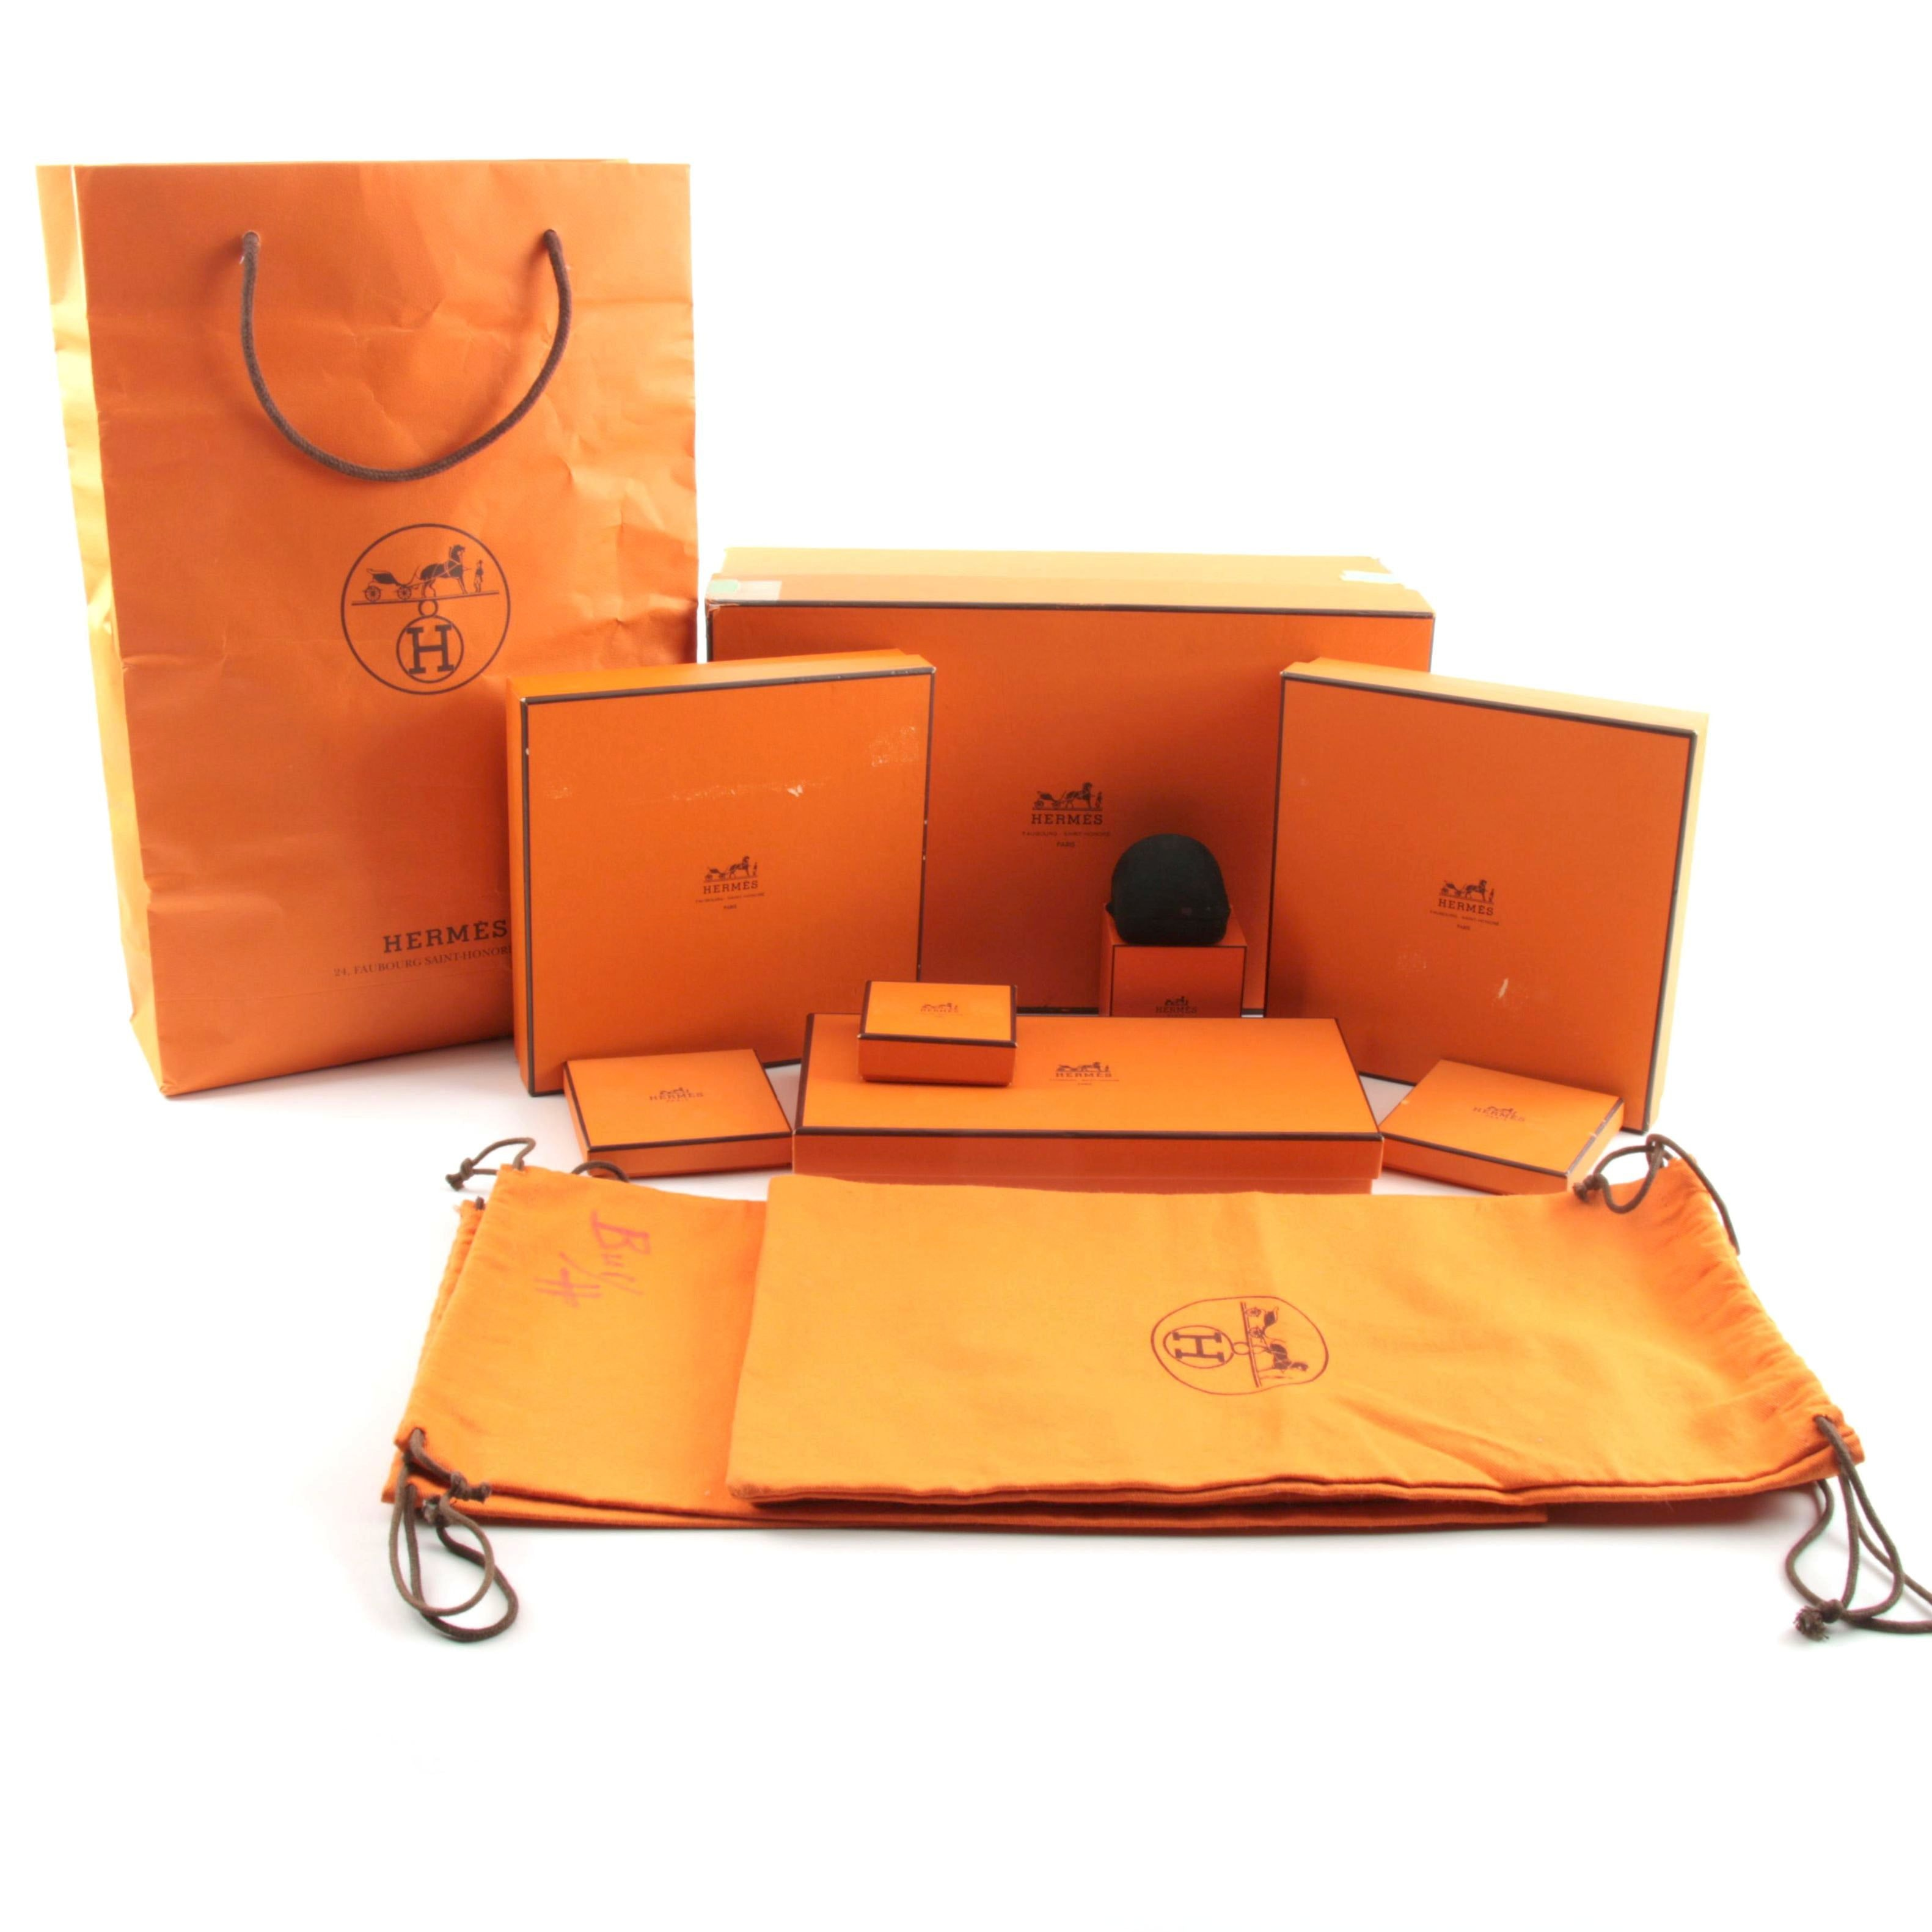 Hermès Gift Boxes and Shopping Bags